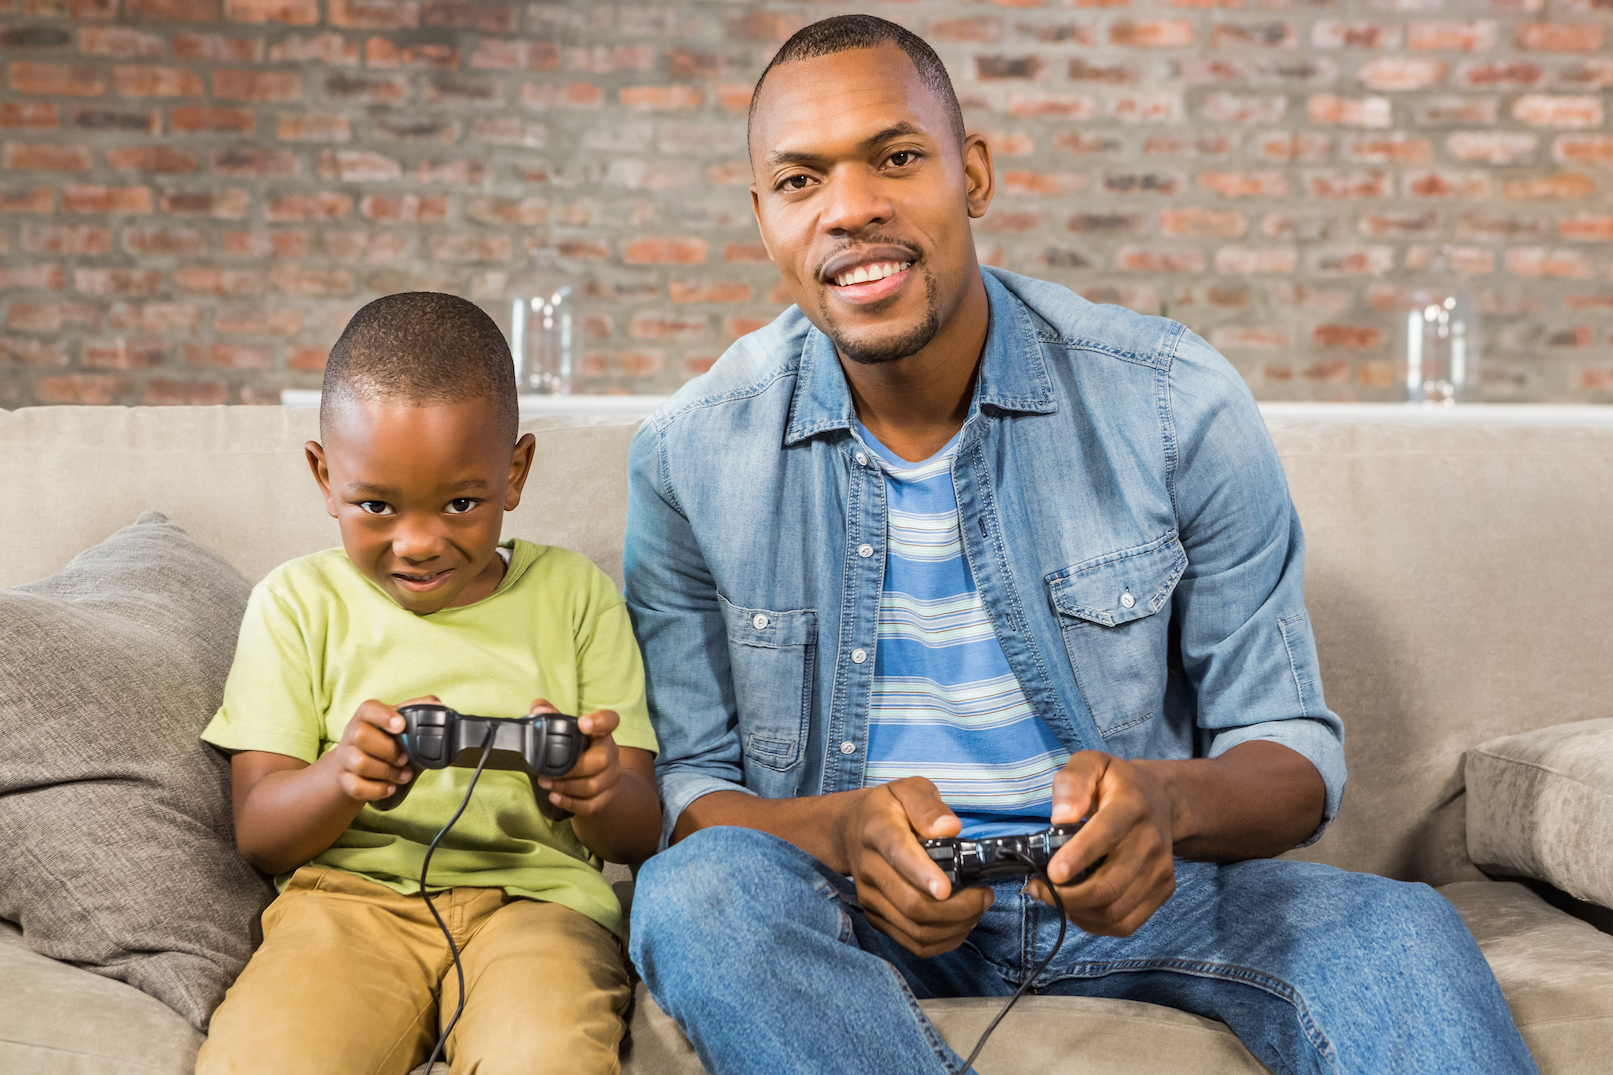 According to new research from scientists at the University of York, video game skill may show a direct correlation to higher intelligence.